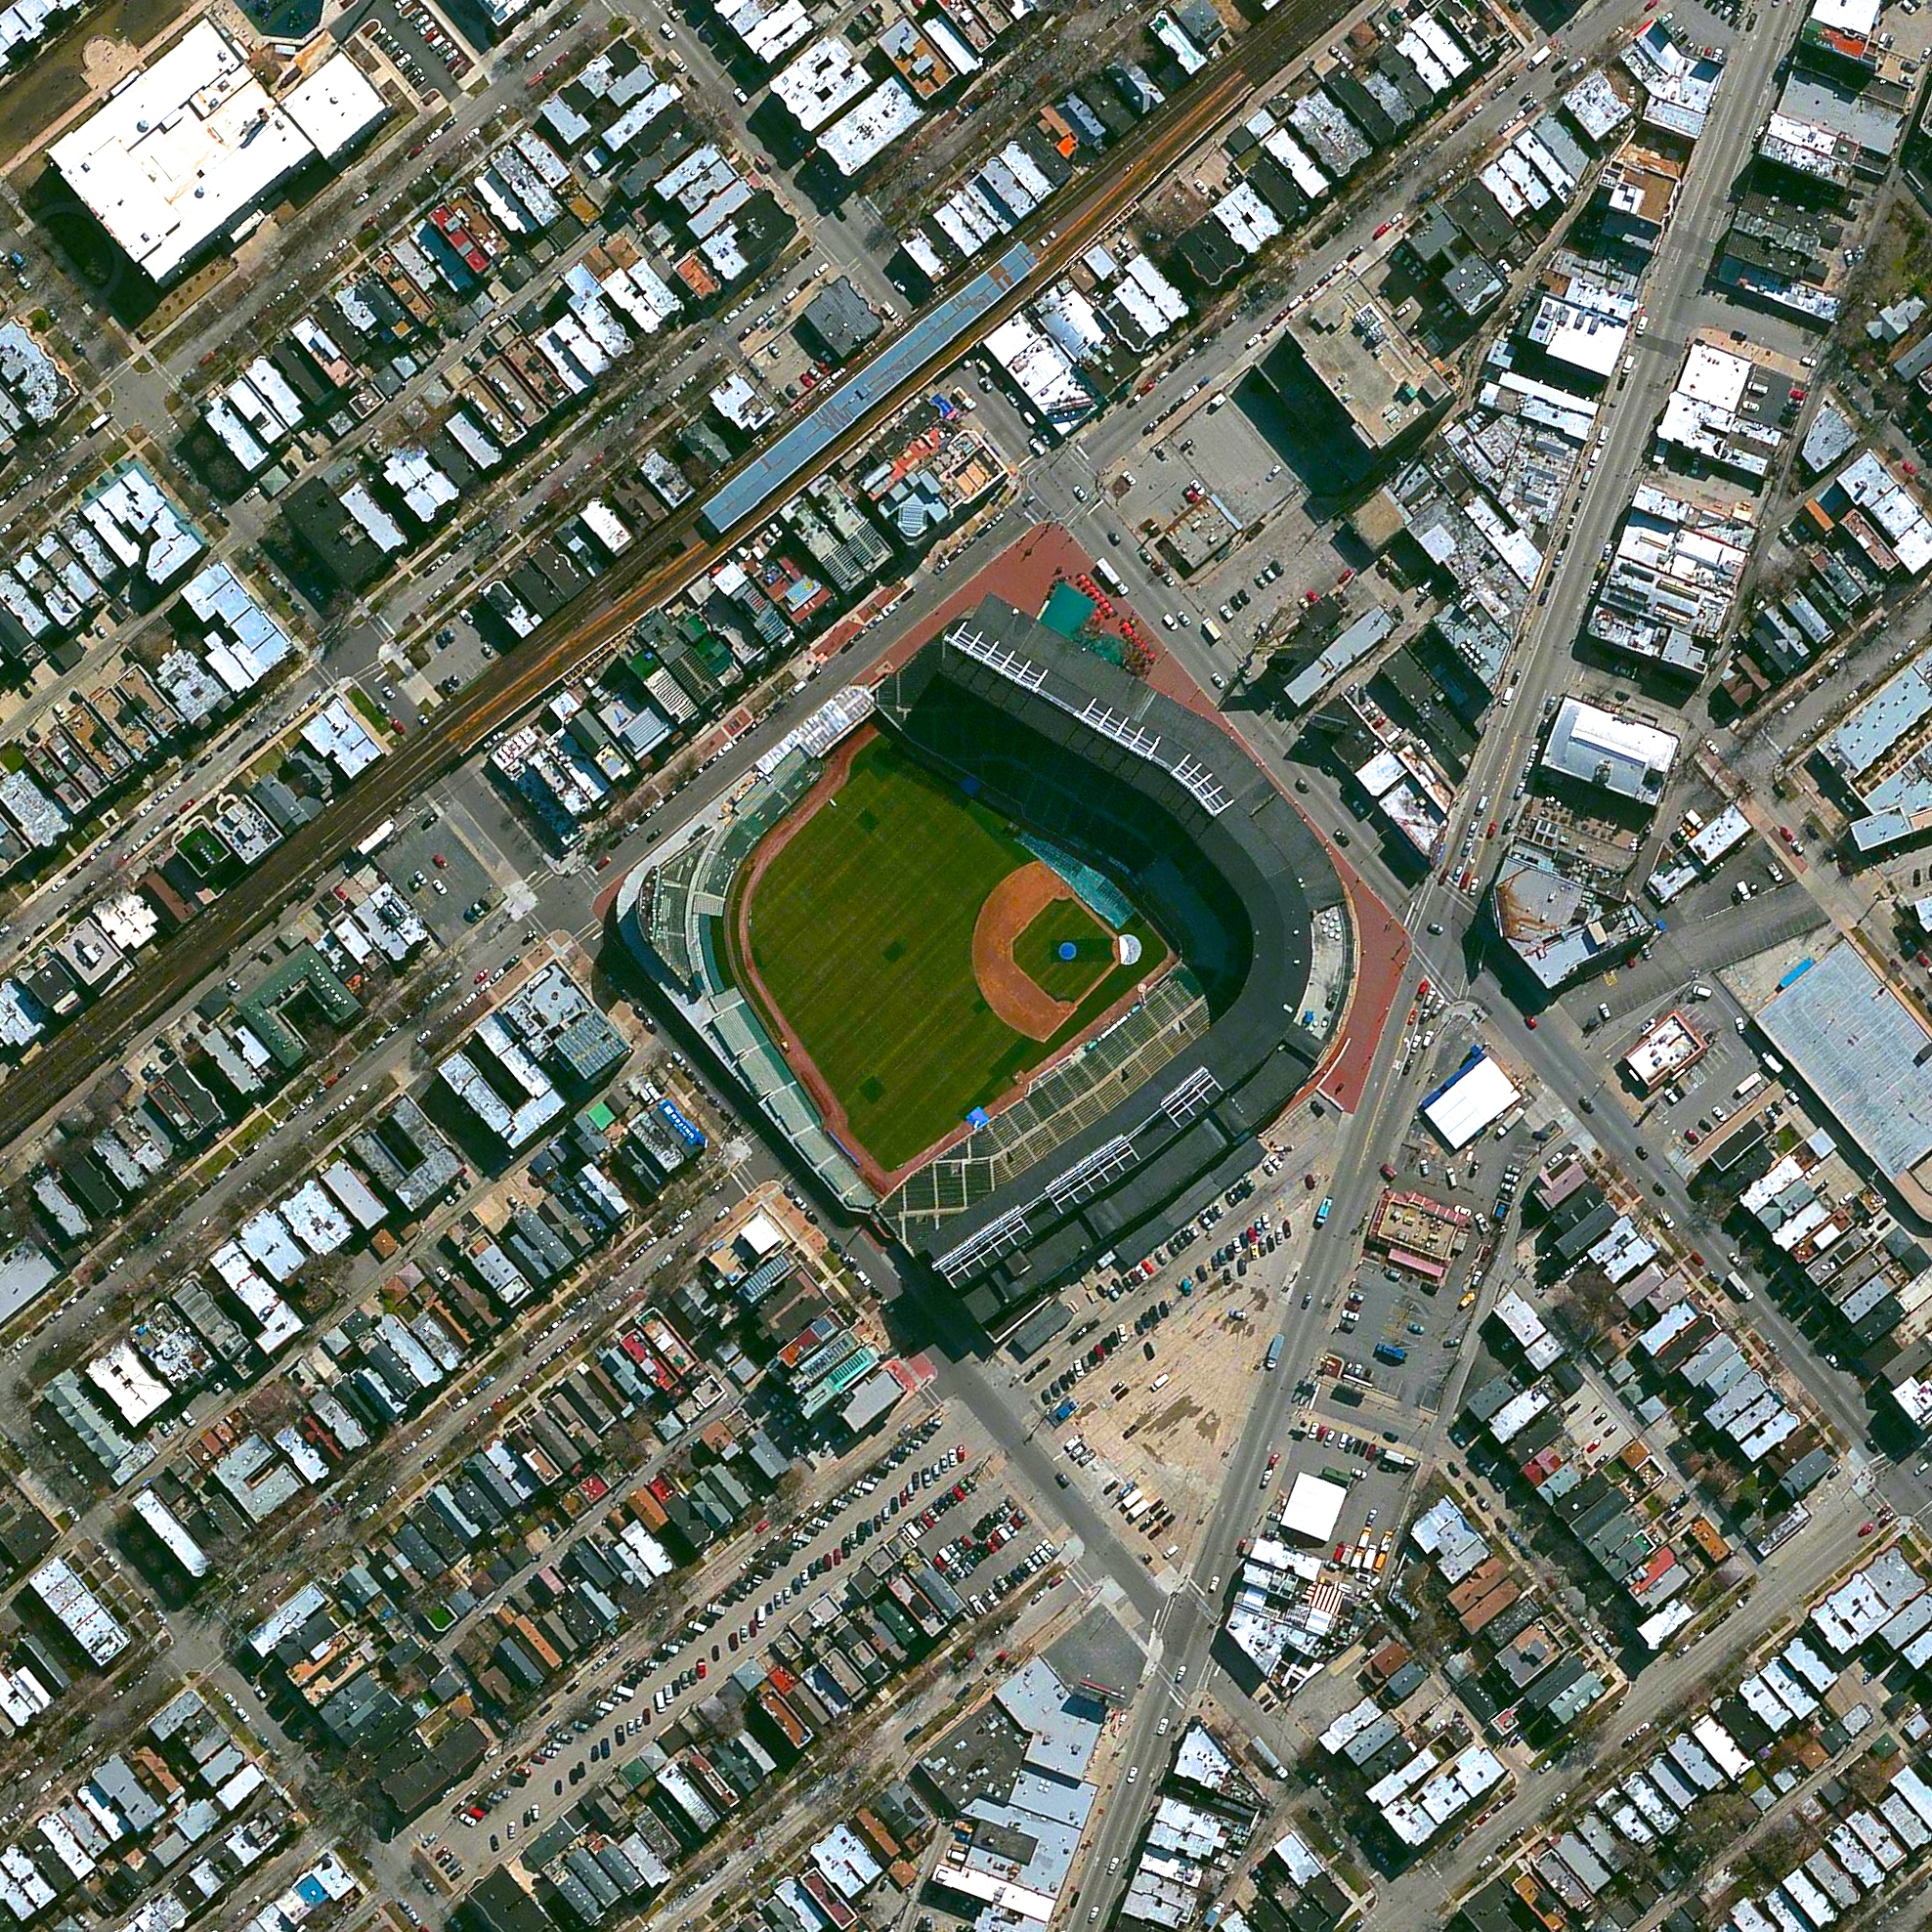 "6/21/2015   Wrigley Field   Chicago, Illinois, USA  41°56′54″N 87°39′20″W     It's Father's Day here in the United States, so I thought it was fitting to share an Overview of my dad's favorite place - Wrigley Field. The stadium is home to the Chicago Cubs and is the second-oldest active major league ballpark (after Fenway Park in Boston) with its first game played in 1916.  ""The Friendly Confines"" are  known for its ivy-covered brick outfield wall and was the last major league ballpark to have lights installed for night games in 1988."